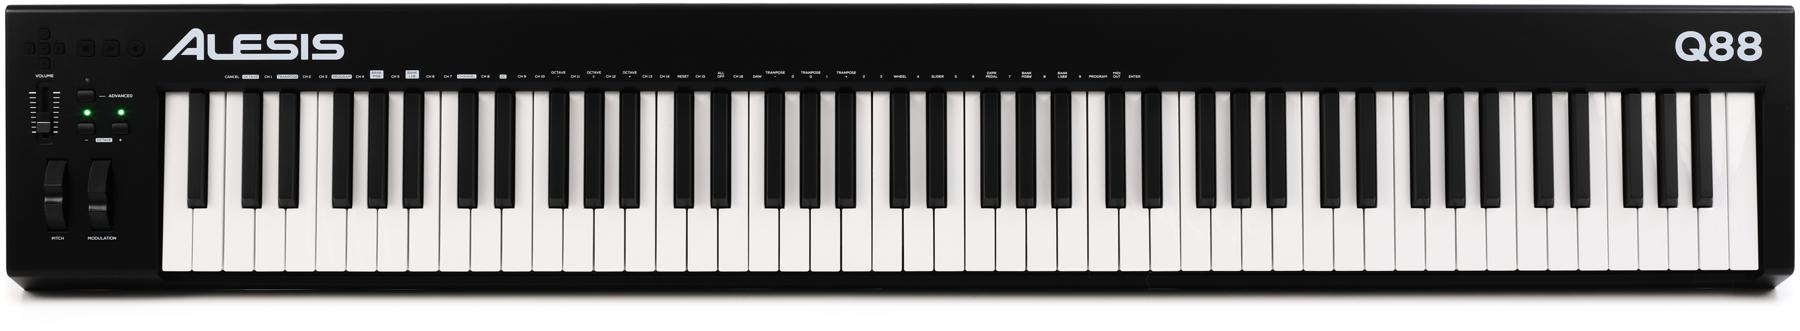 1. Alesis Q88 | 88-Key USB/MIDI Keyboard